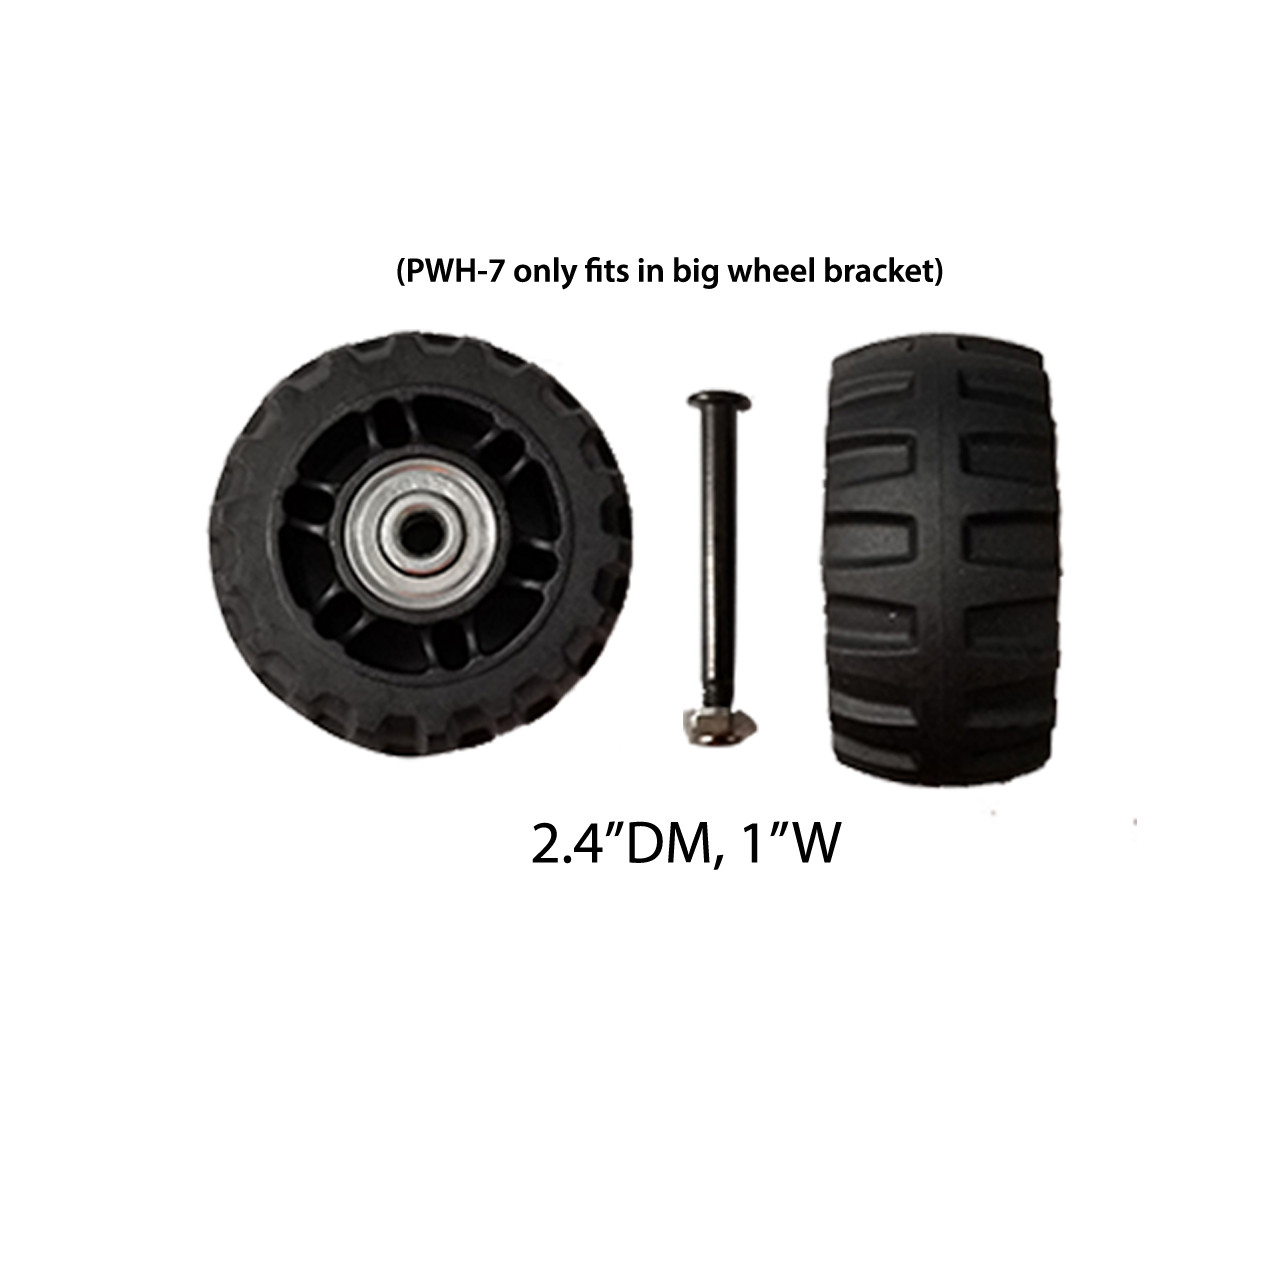 "Extra Large Front and back wheels - PWH-7 (2.4""DM/1""W) / A quantity of 1 is 2 wheels"